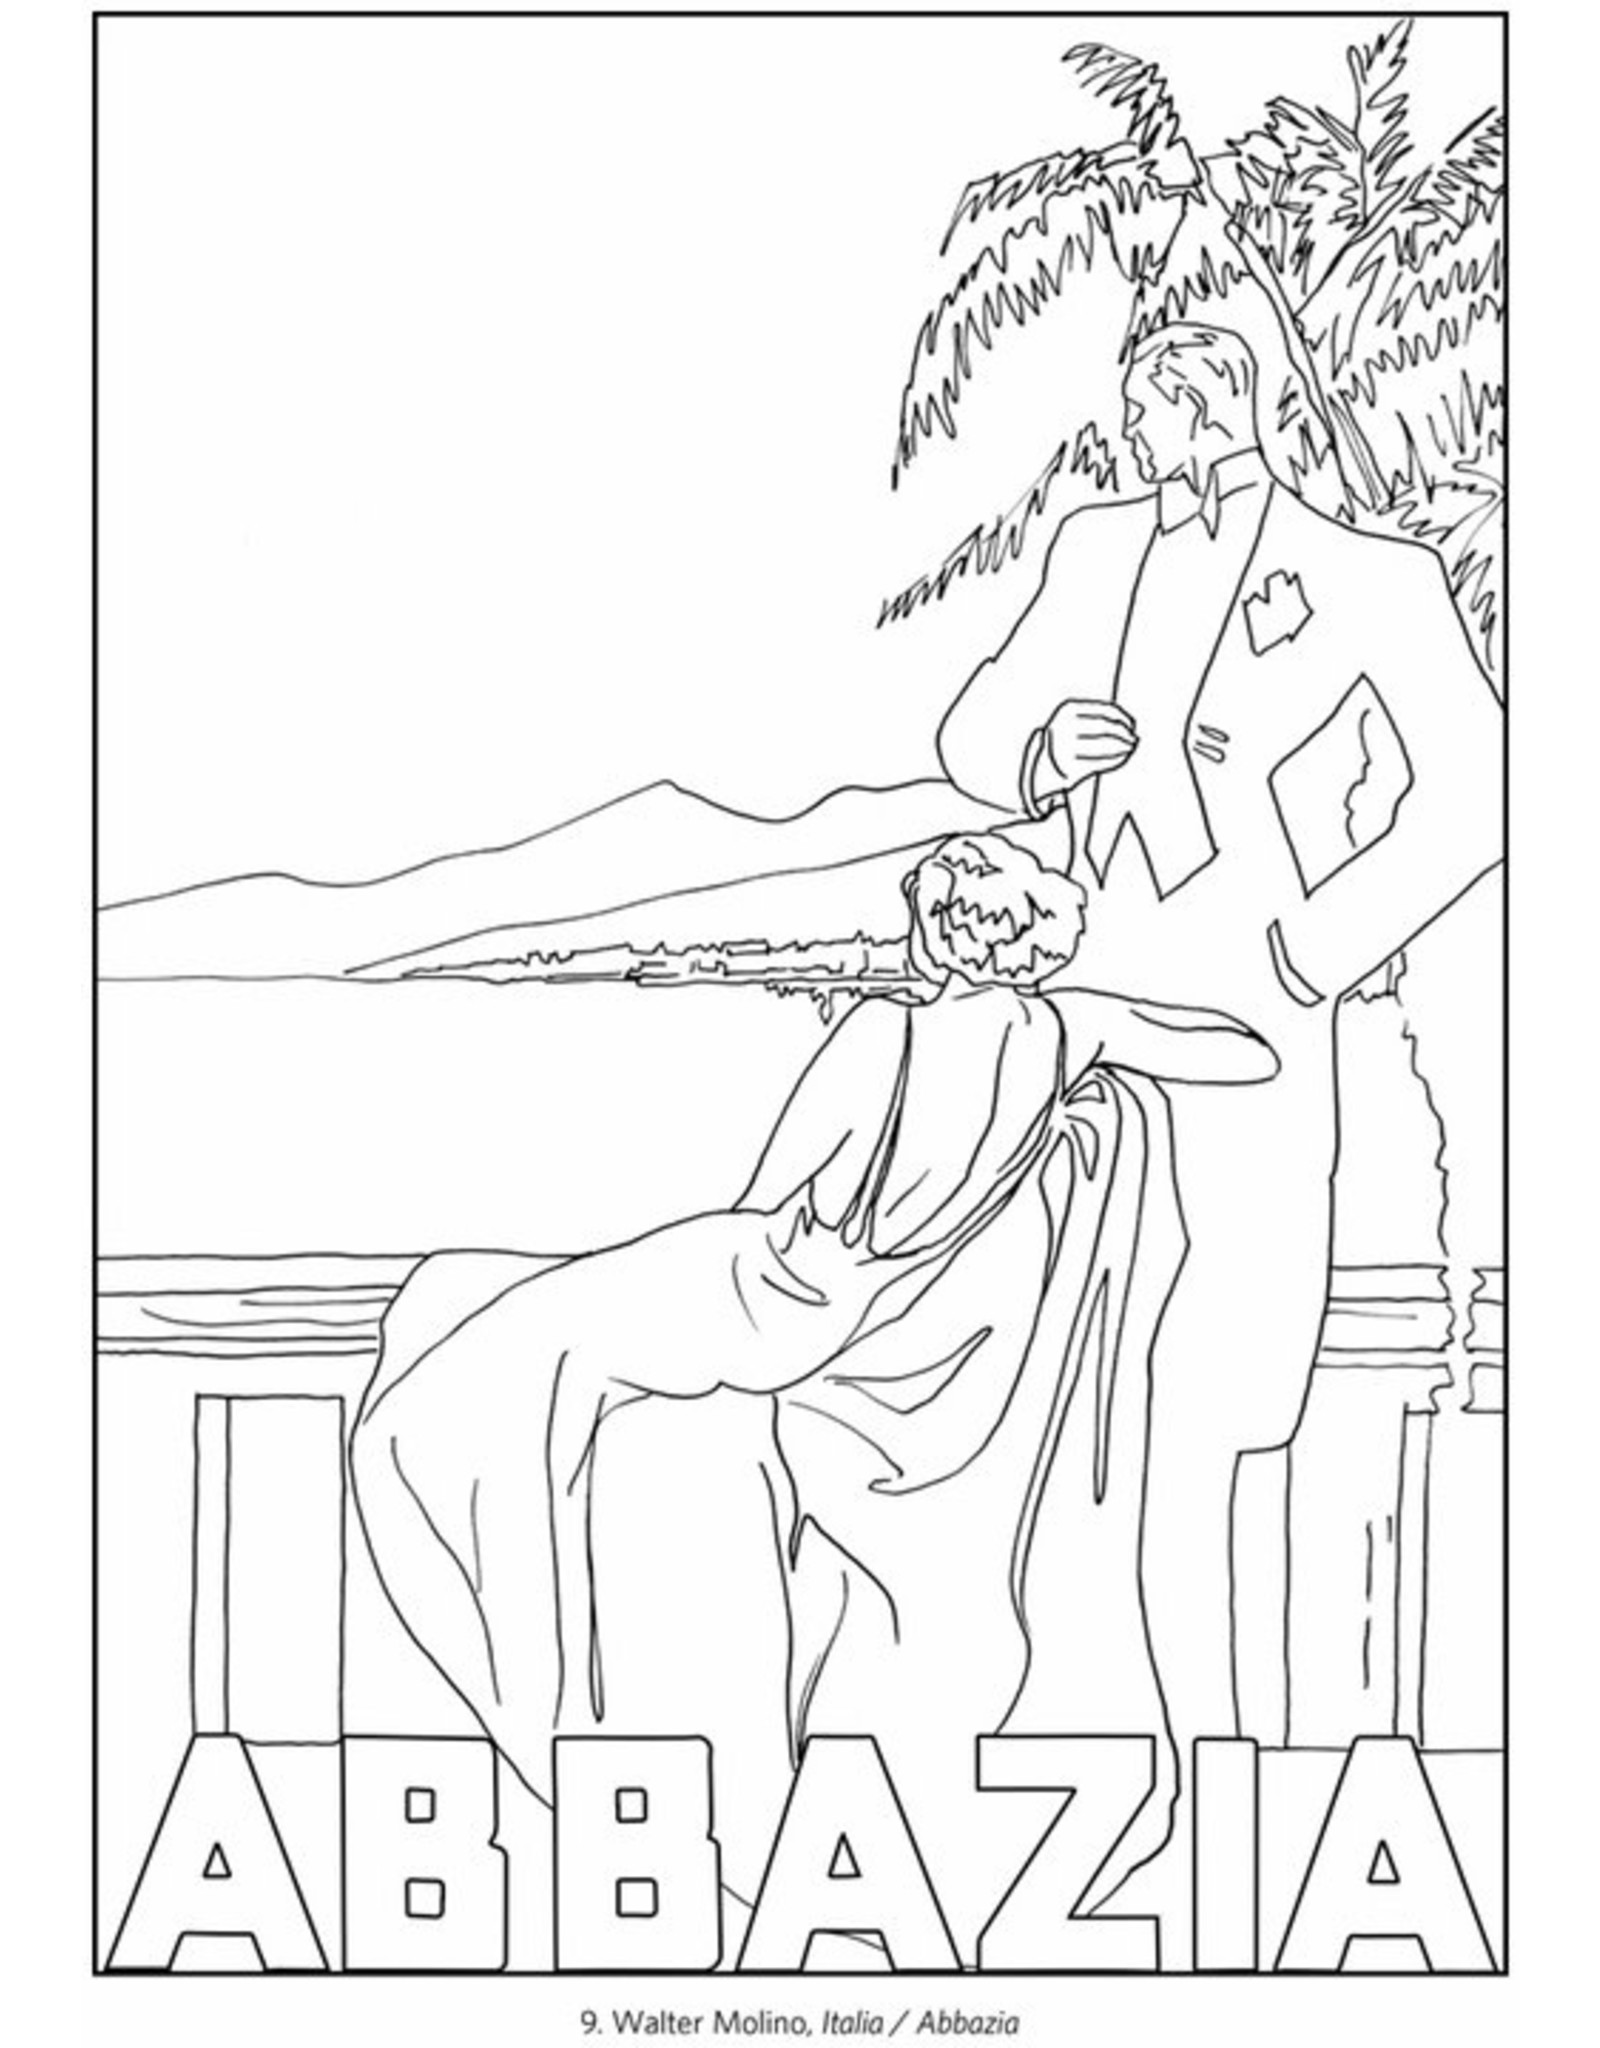 Pomegranate Italy travel Posters Coloring Book